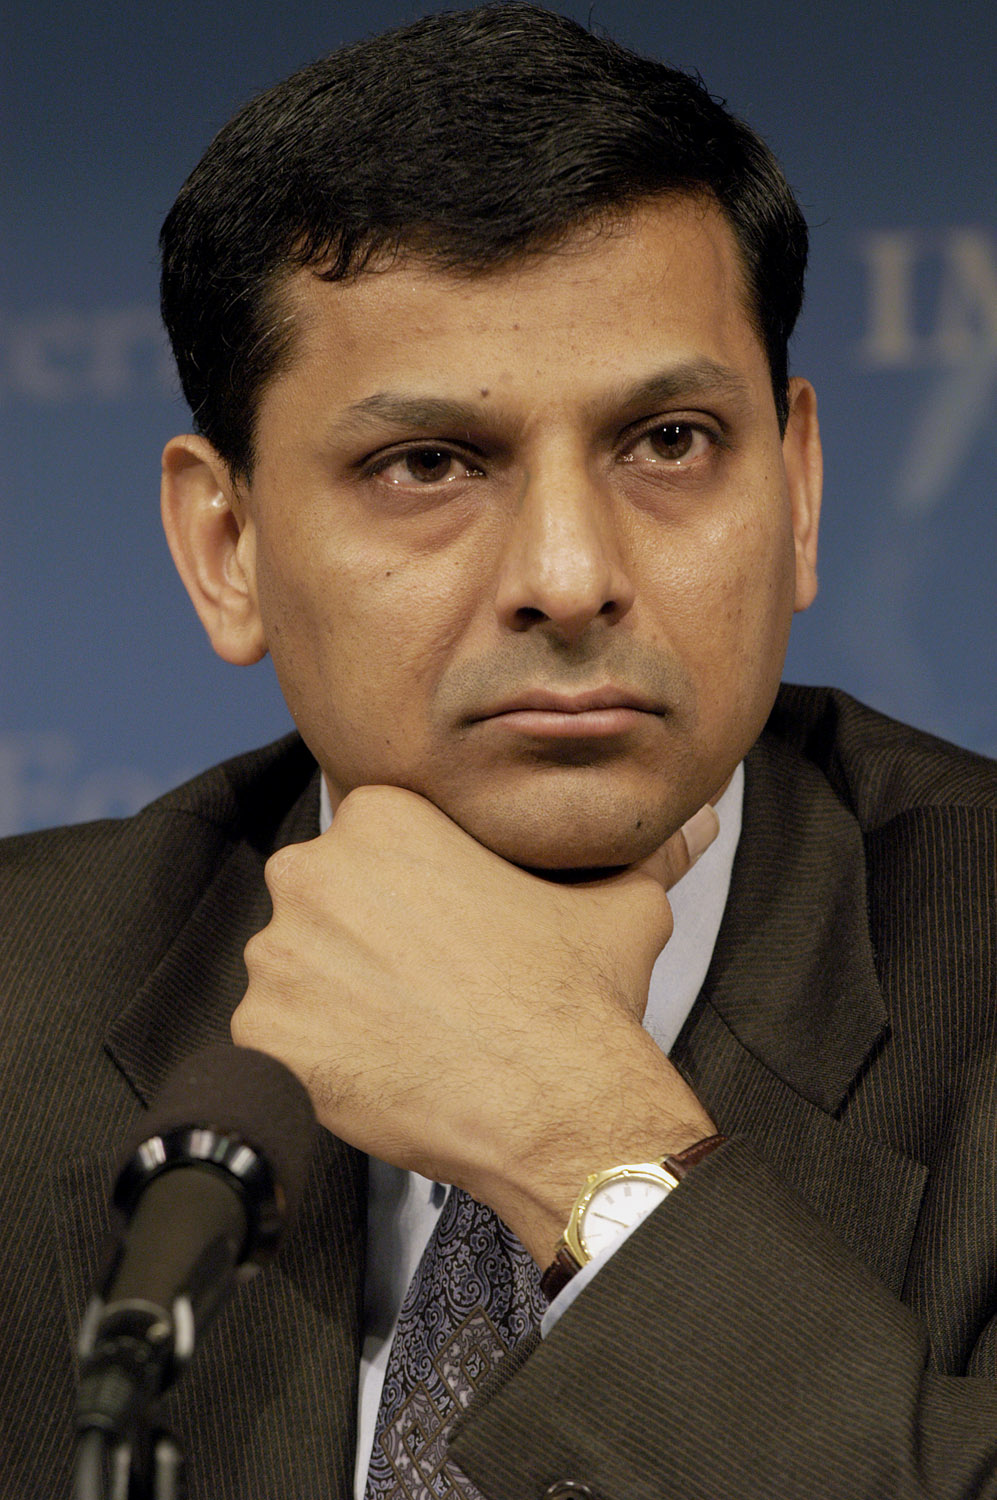 Financial inclusion should not be pressed beyond a point: RBI Governor